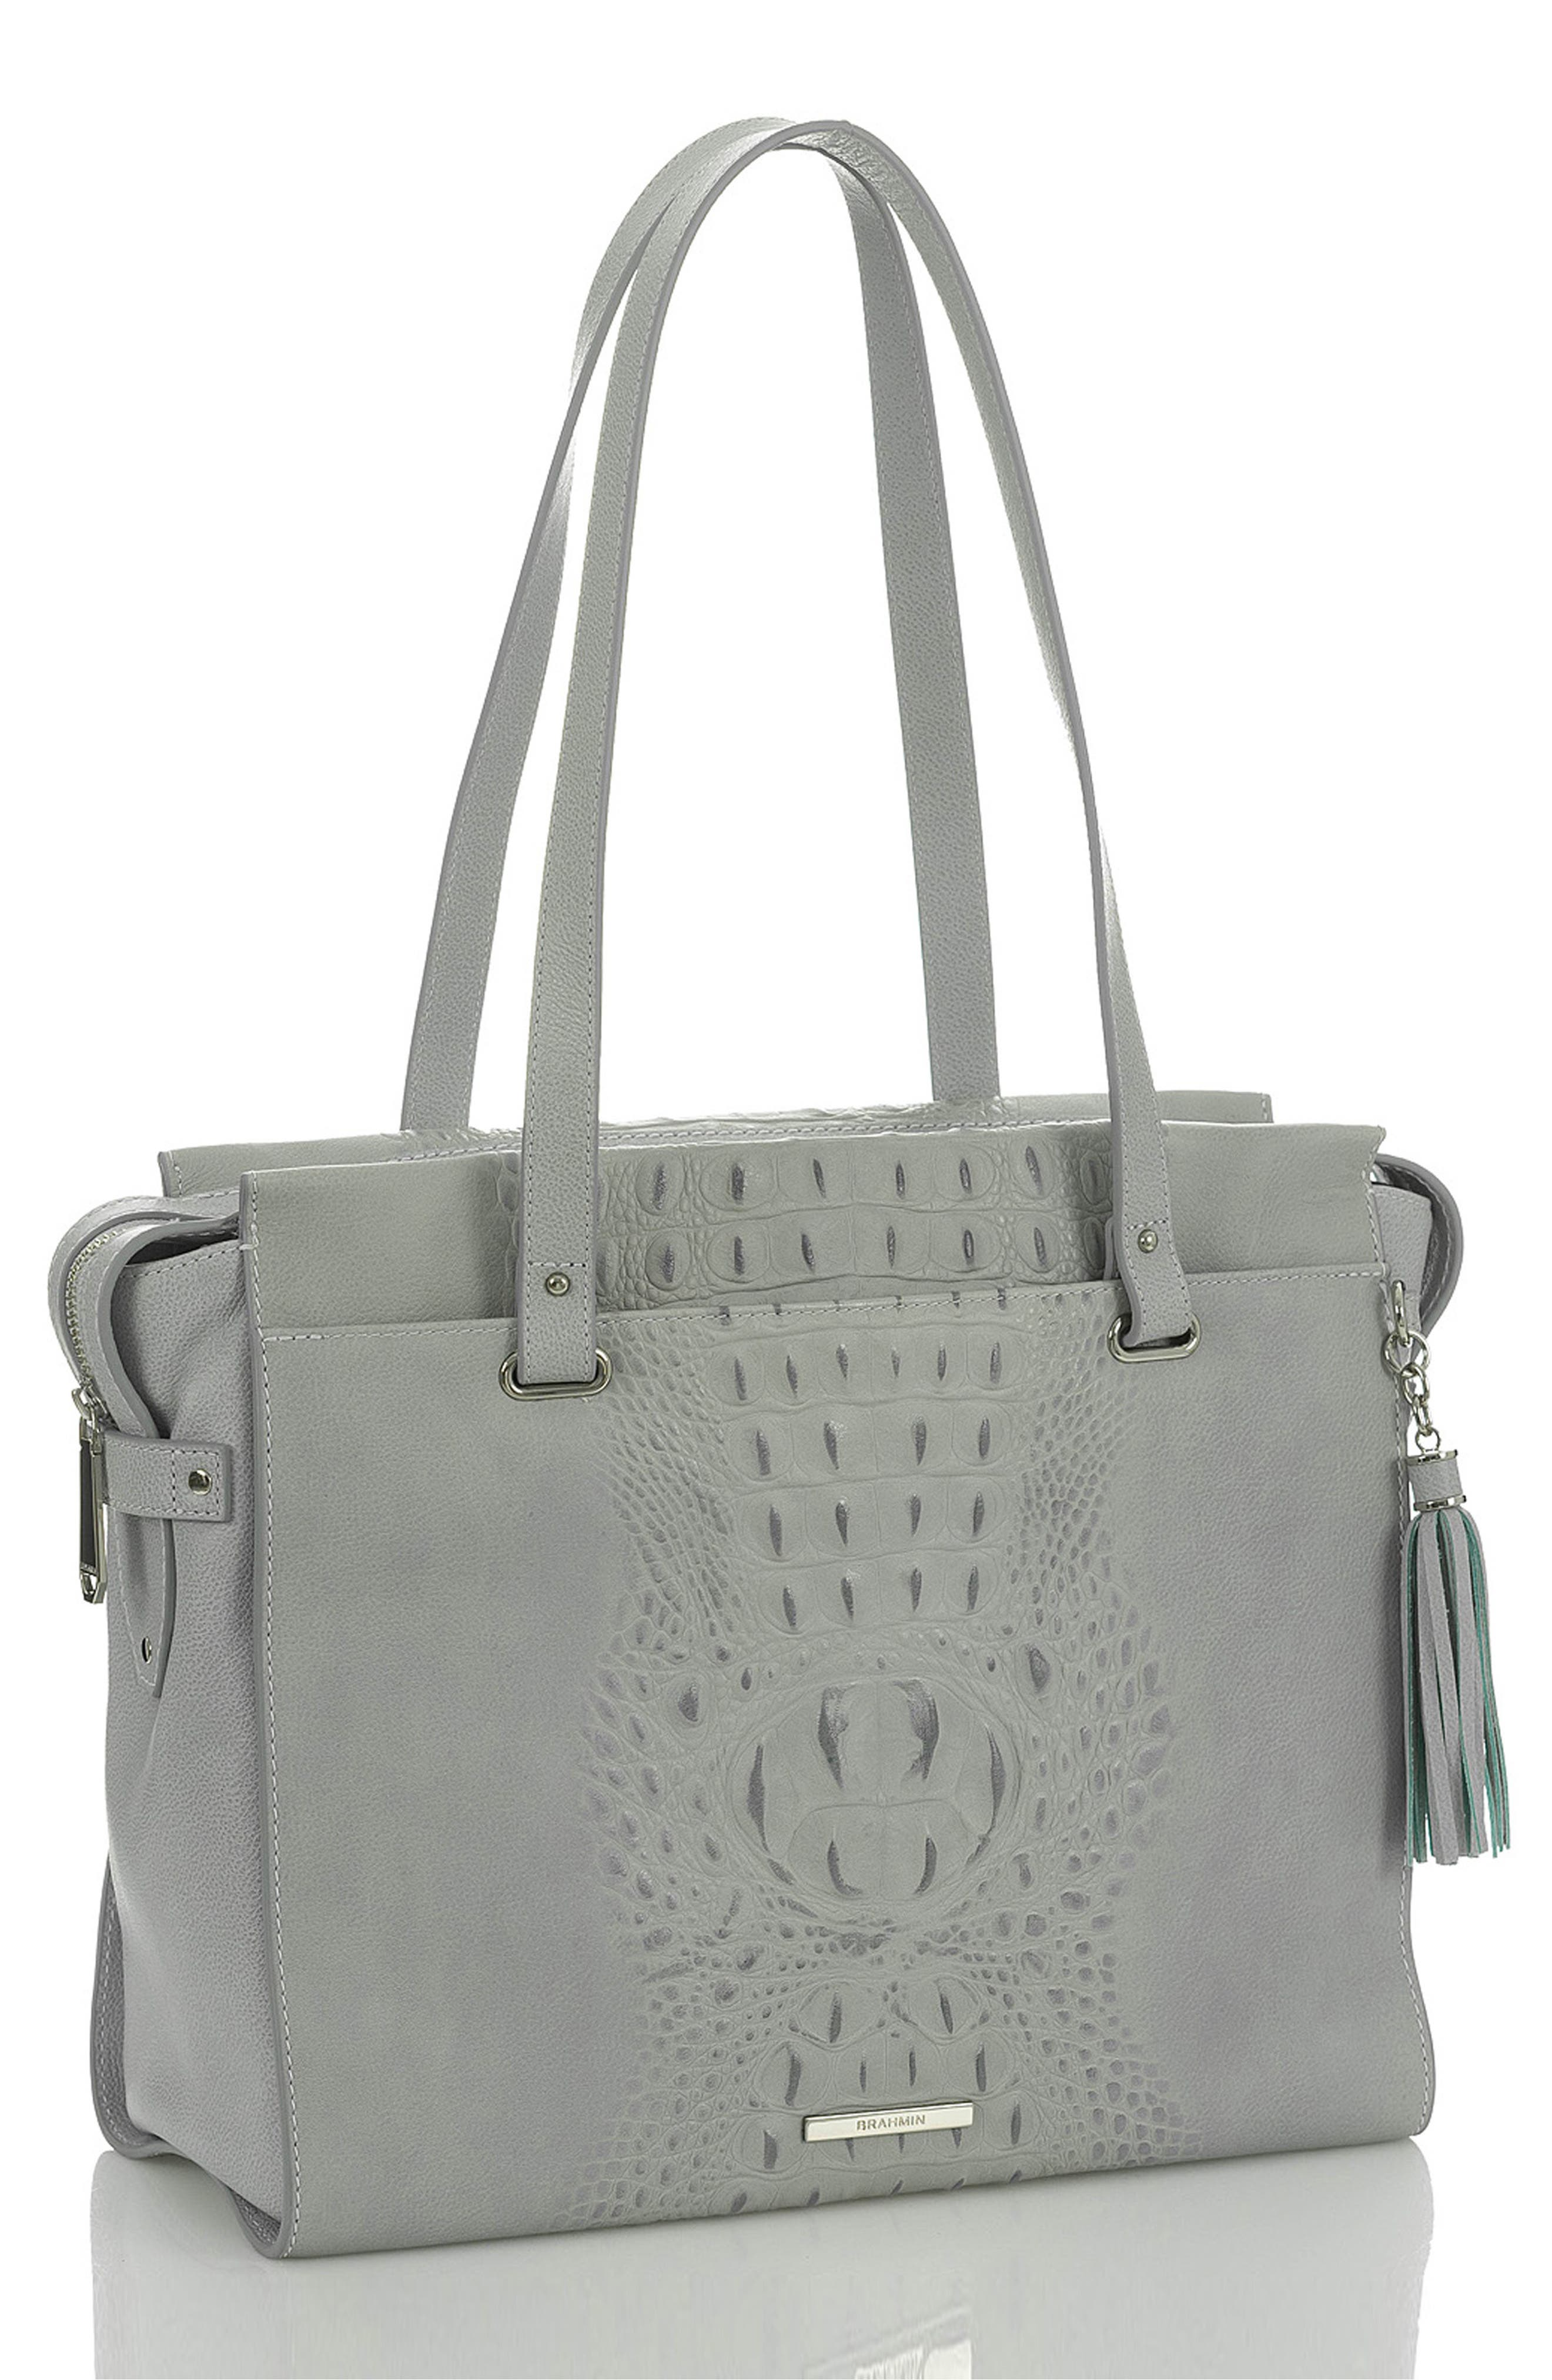 BRAHMIN, Medium Emily Leather Tote, Alternate thumbnail 4, color, OCEAN